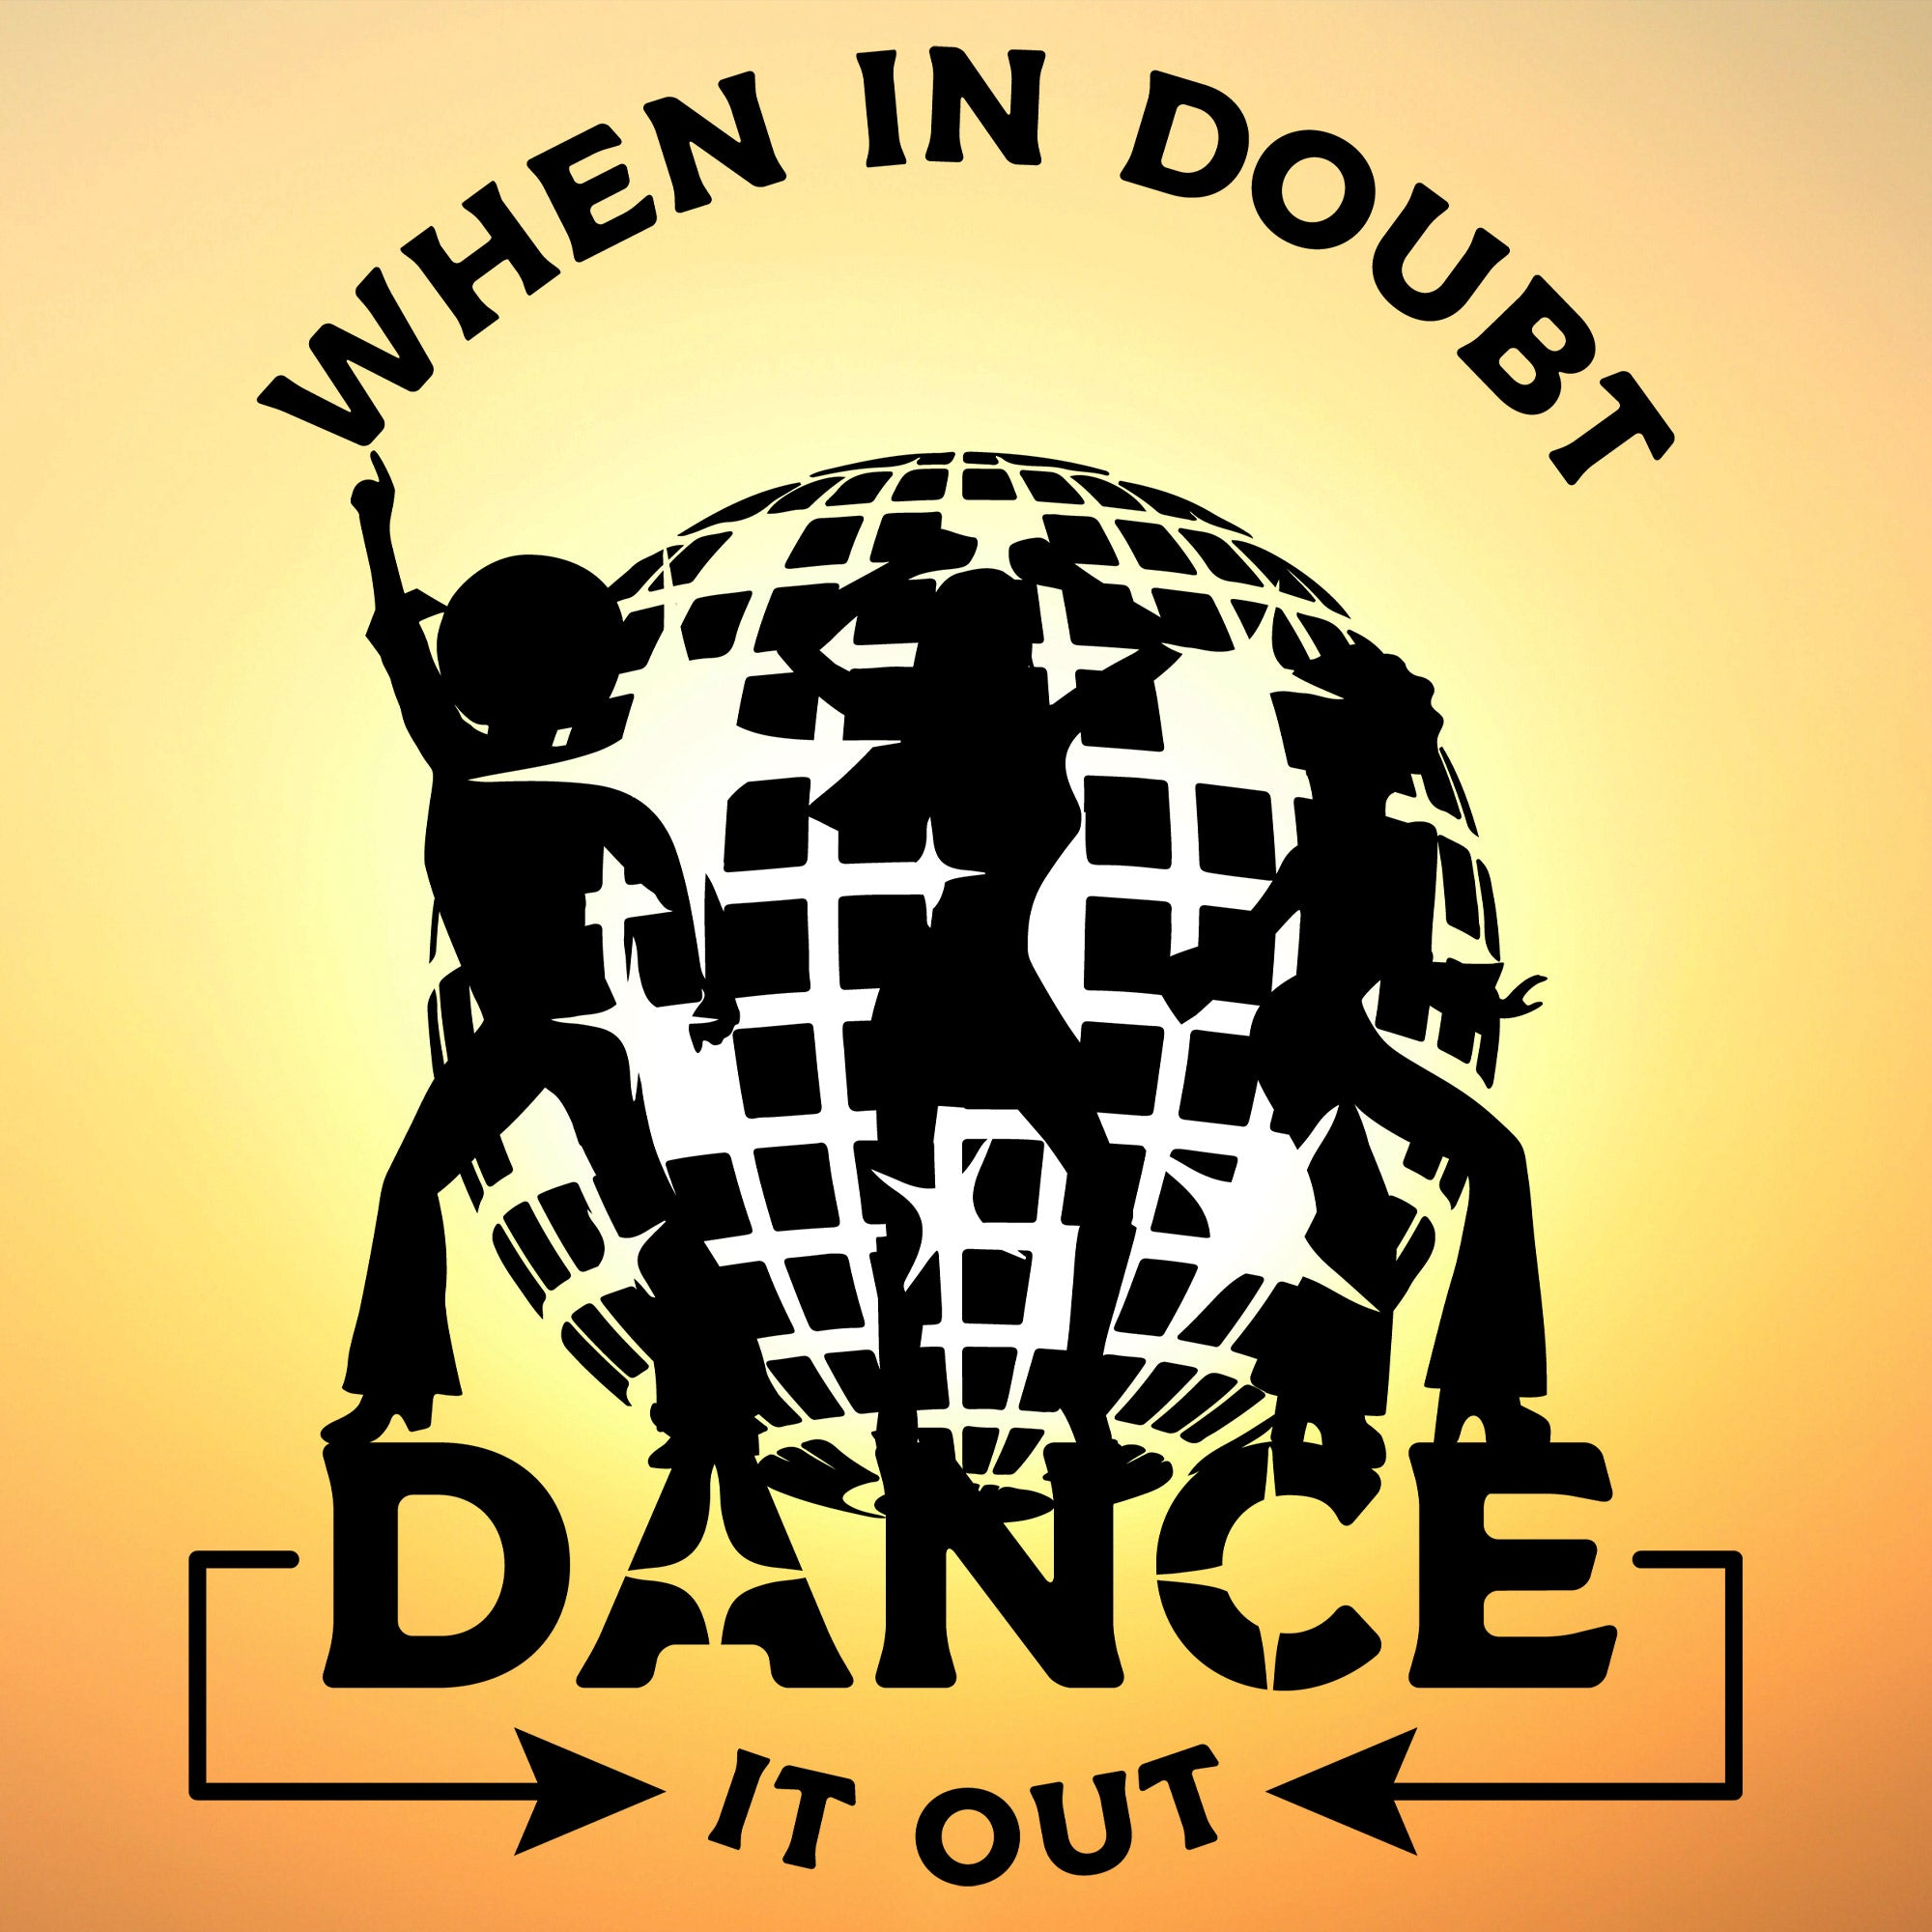 disco dancers, when in doubt dance it out, SVG on a sun washed sky background